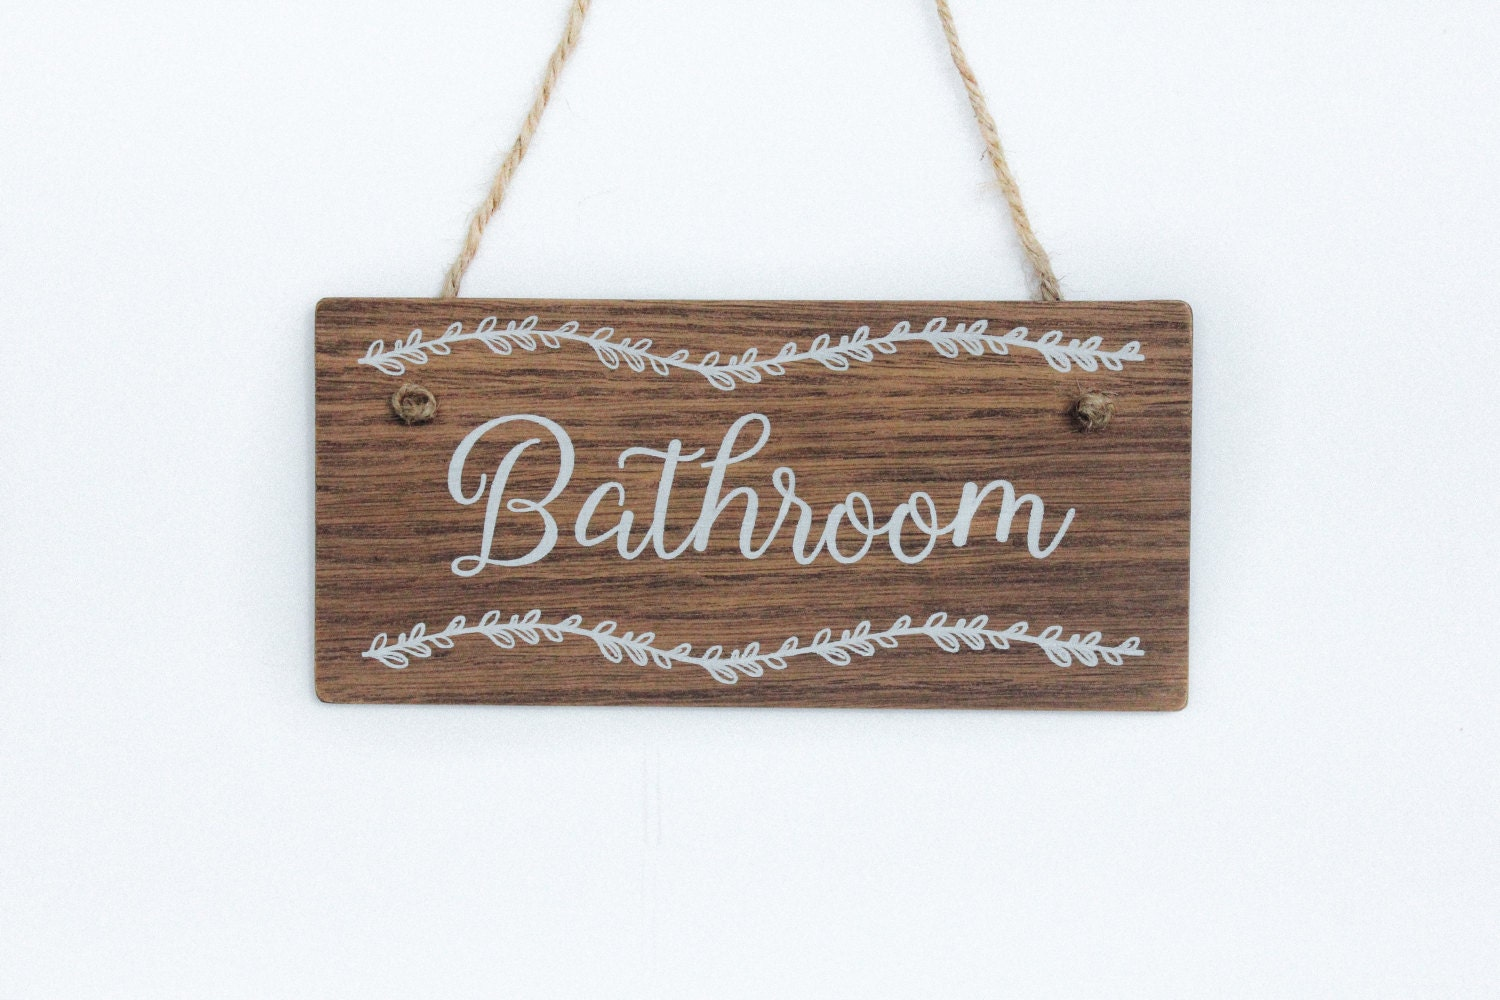 Wooden Bathroom Sign Rustic Door Sign Bathroom Decor Door. Real Estate Lead Generation Ideas. Acting Classes In New York Aroma Thai Massage. Photography Classes Peoria Il. Best Birth Control Pill For Endometriosis. Rice University Study Abroad Help With Add. Why Is The Internet So Stupid. Two Way Video Conferencing Home Storage Pods. Checking Account Without Monthly Fees